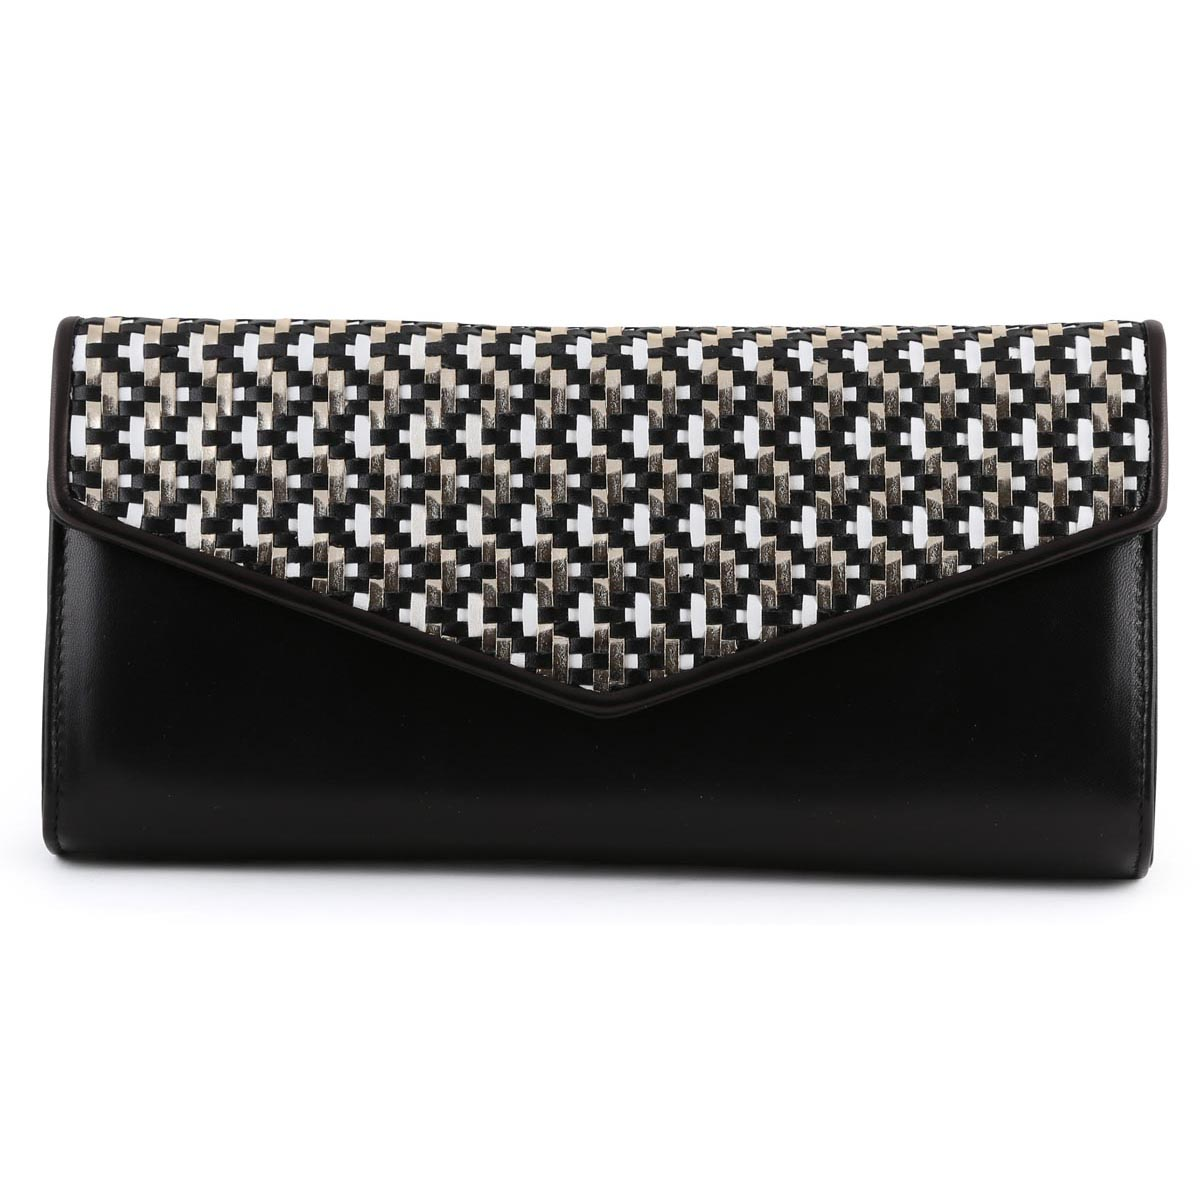 Renata- Black and Gold Clutch Bag